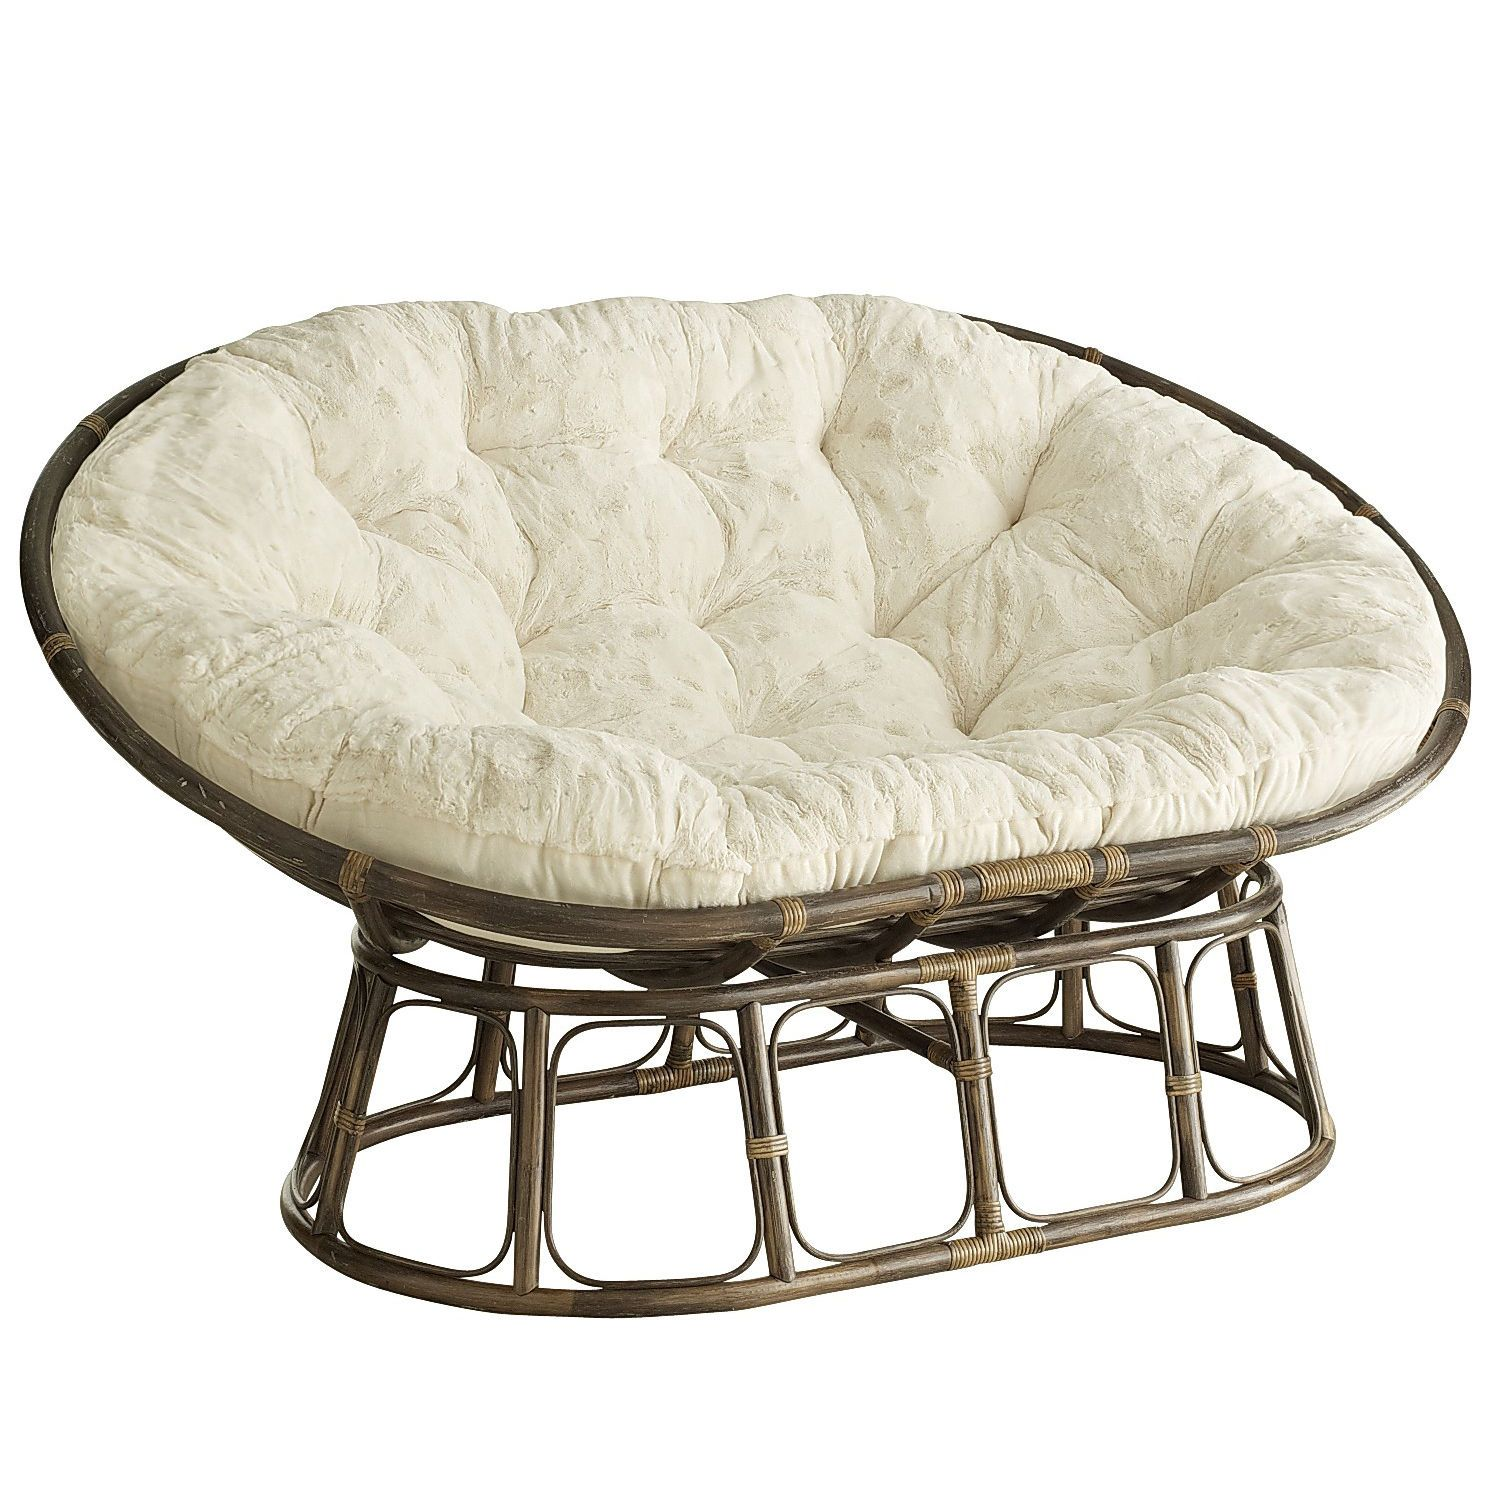 double papasan chair chaise lawn chairs pier 1 i want one of these so bad it